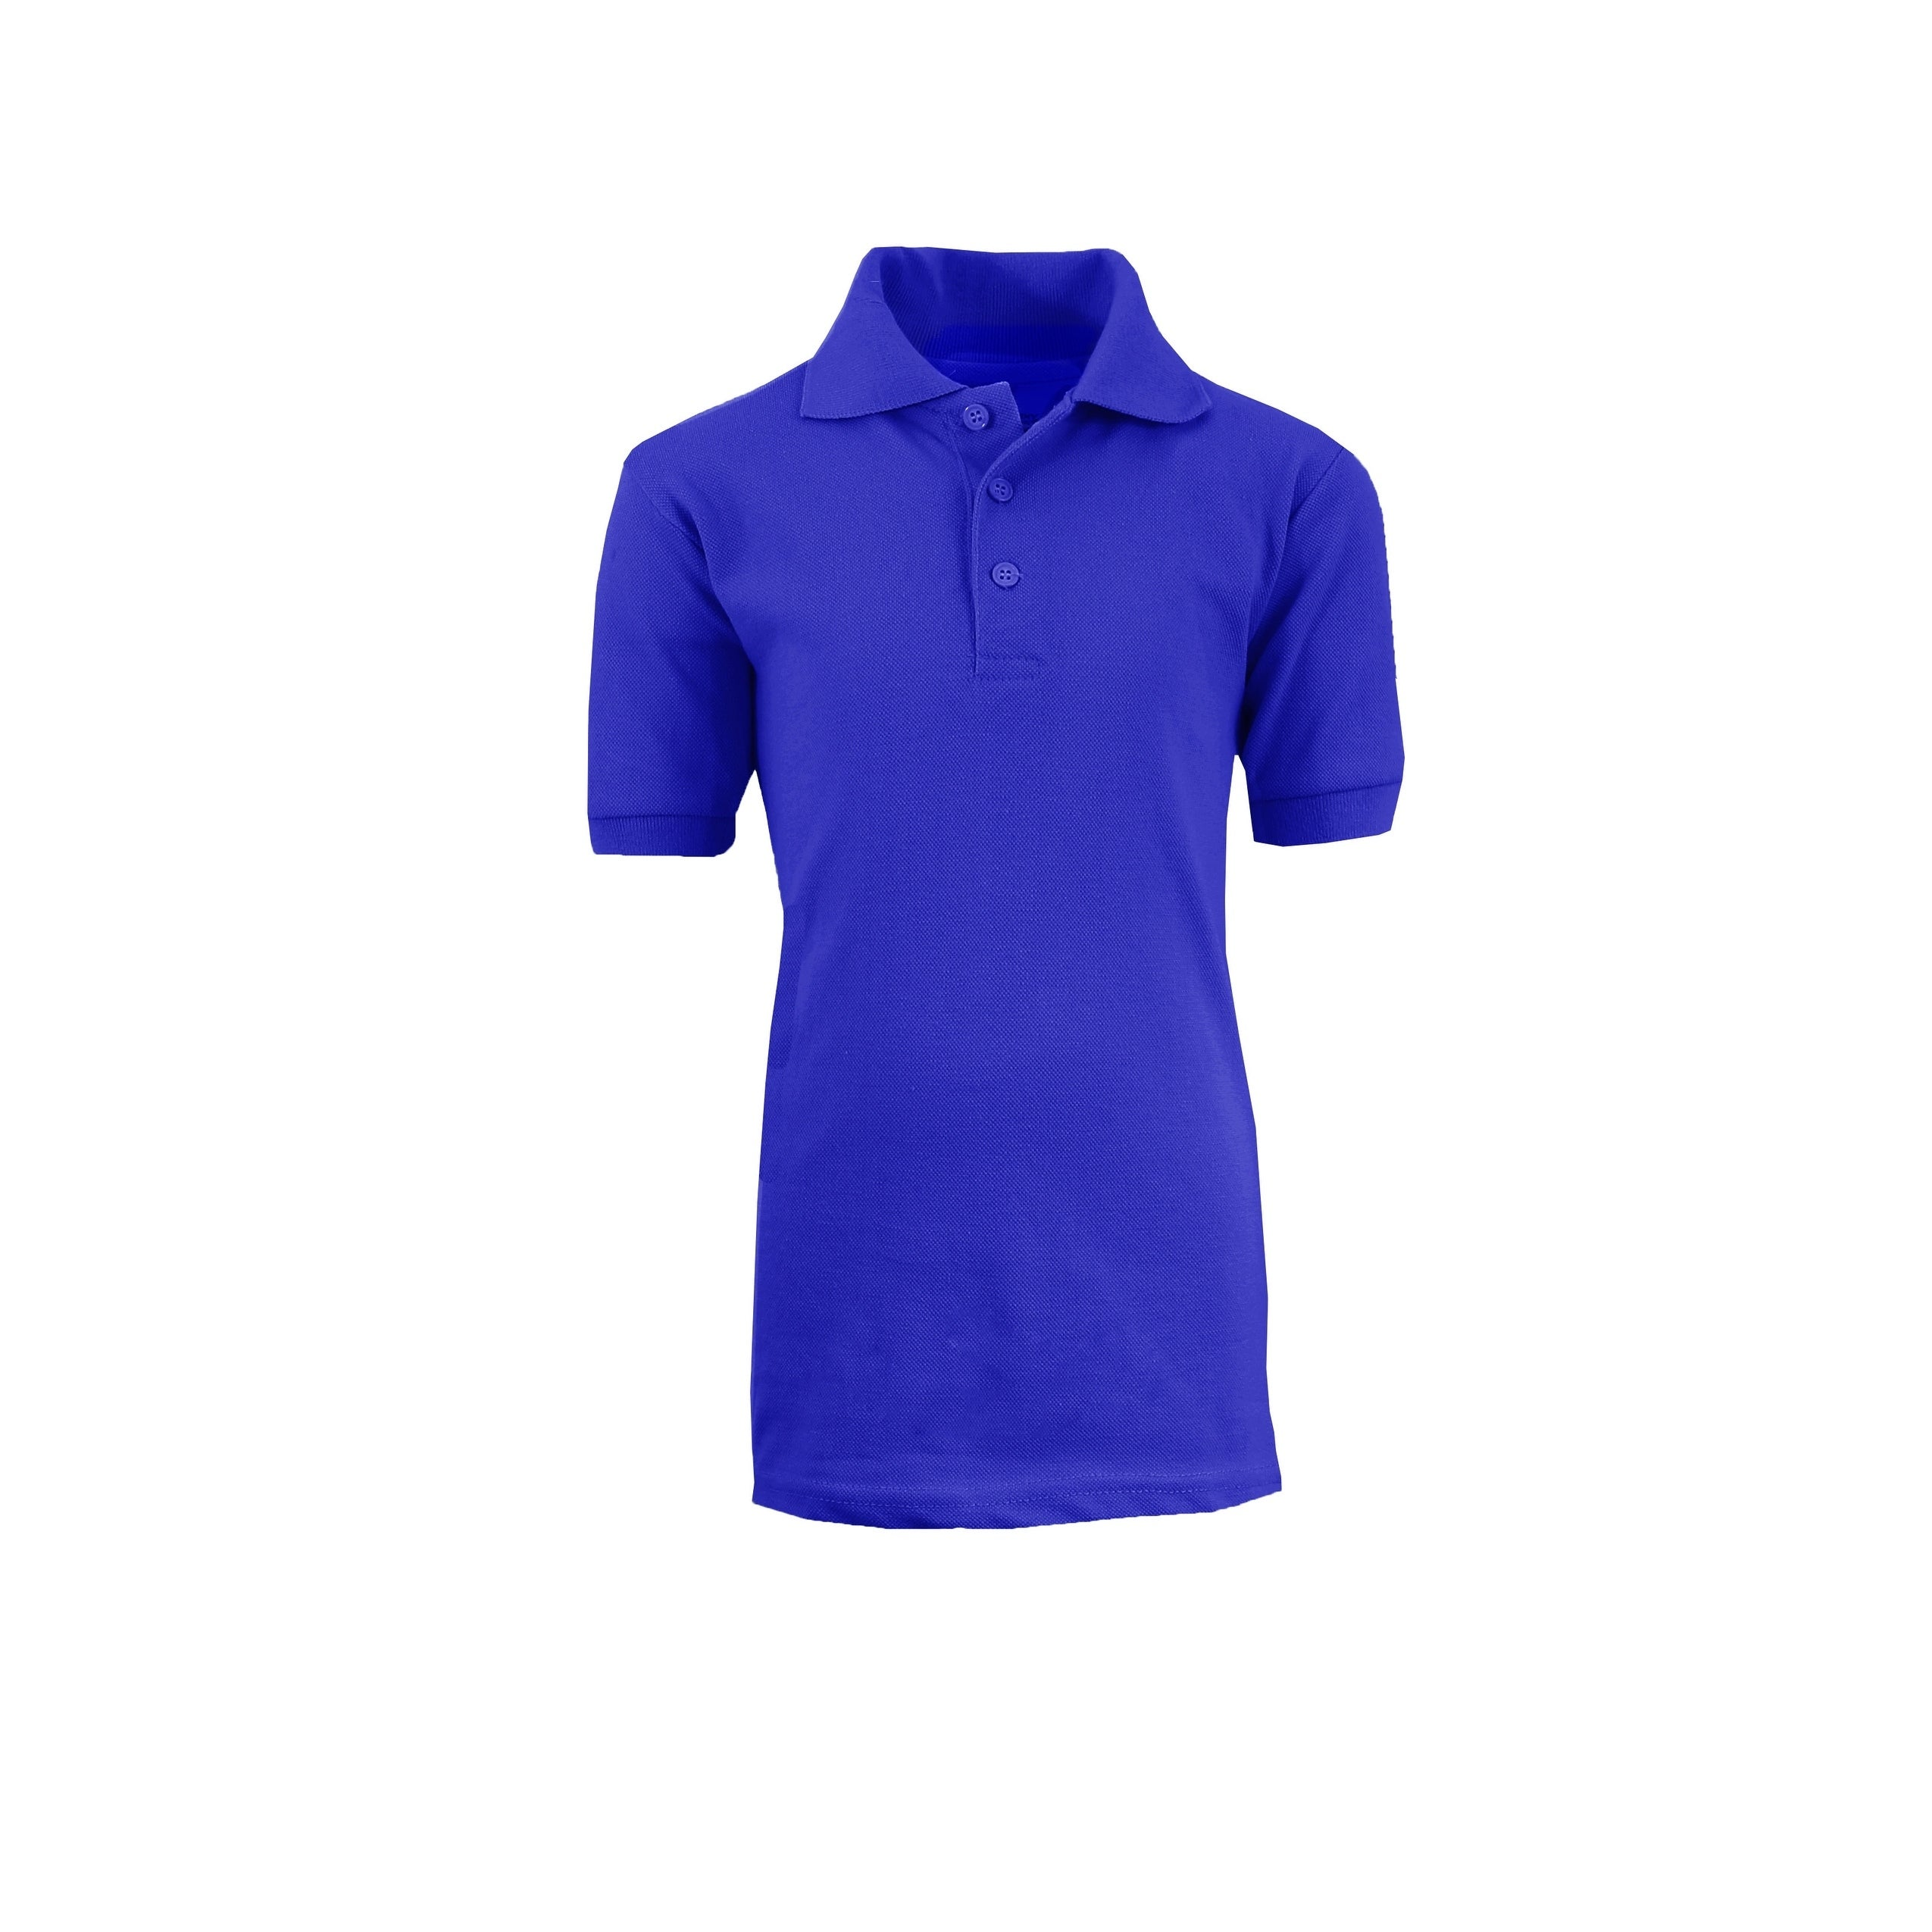 cabina Serpente letale  Shop Galaxy by Harvic Boy's Royal Blue Short Sleeve School Uniform Polo  Shirts - Sizes 4-20 - Overstock - 21903121